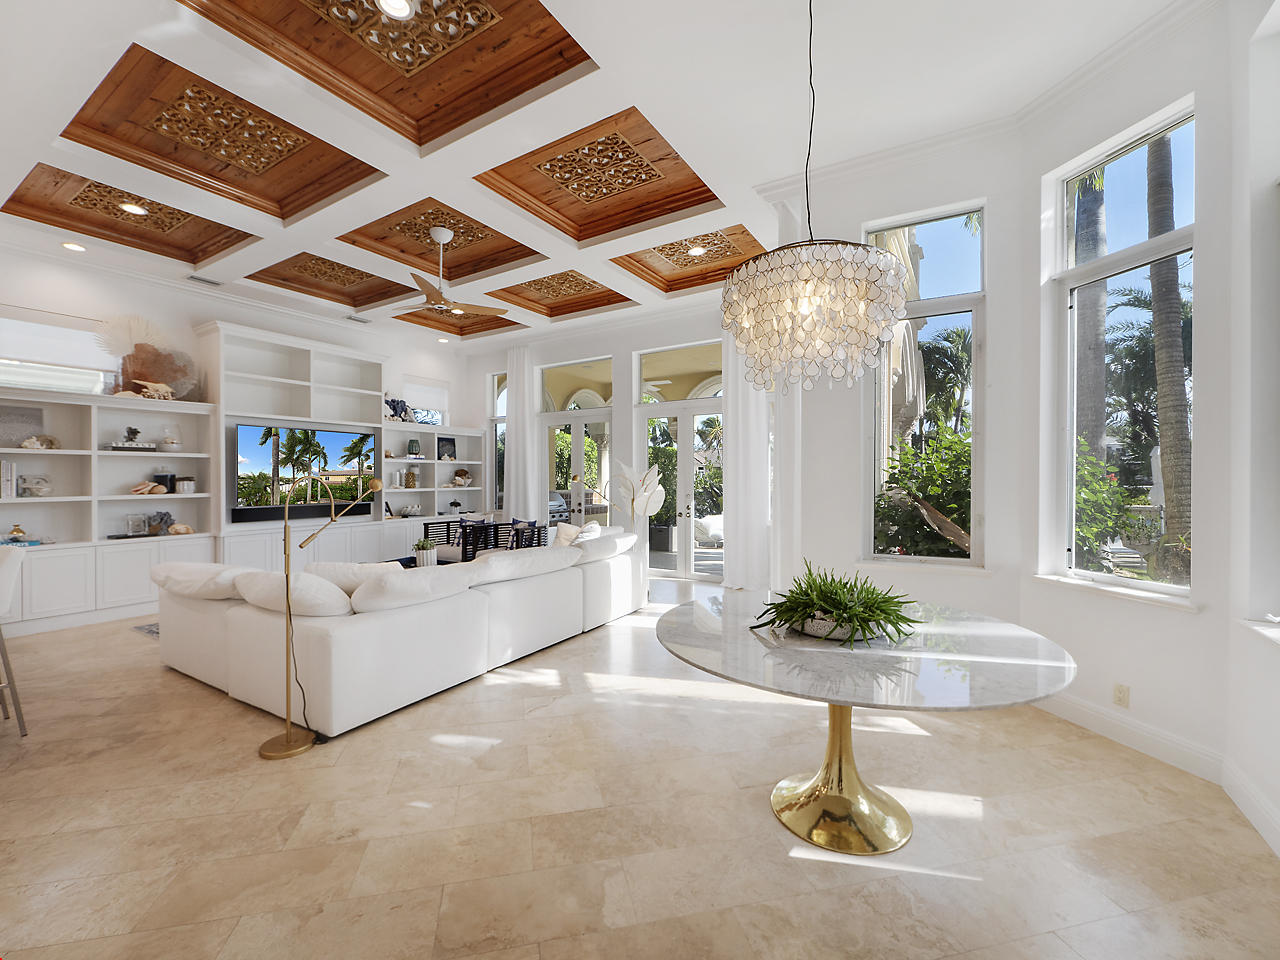 760 Harbour Isle Court, North Palm Beach, Florida 33410, 5 Bedrooms Bedrooms, ,5.1 BathroomsBathrooms,A,Single family,Harbour Isle,RX-10490291